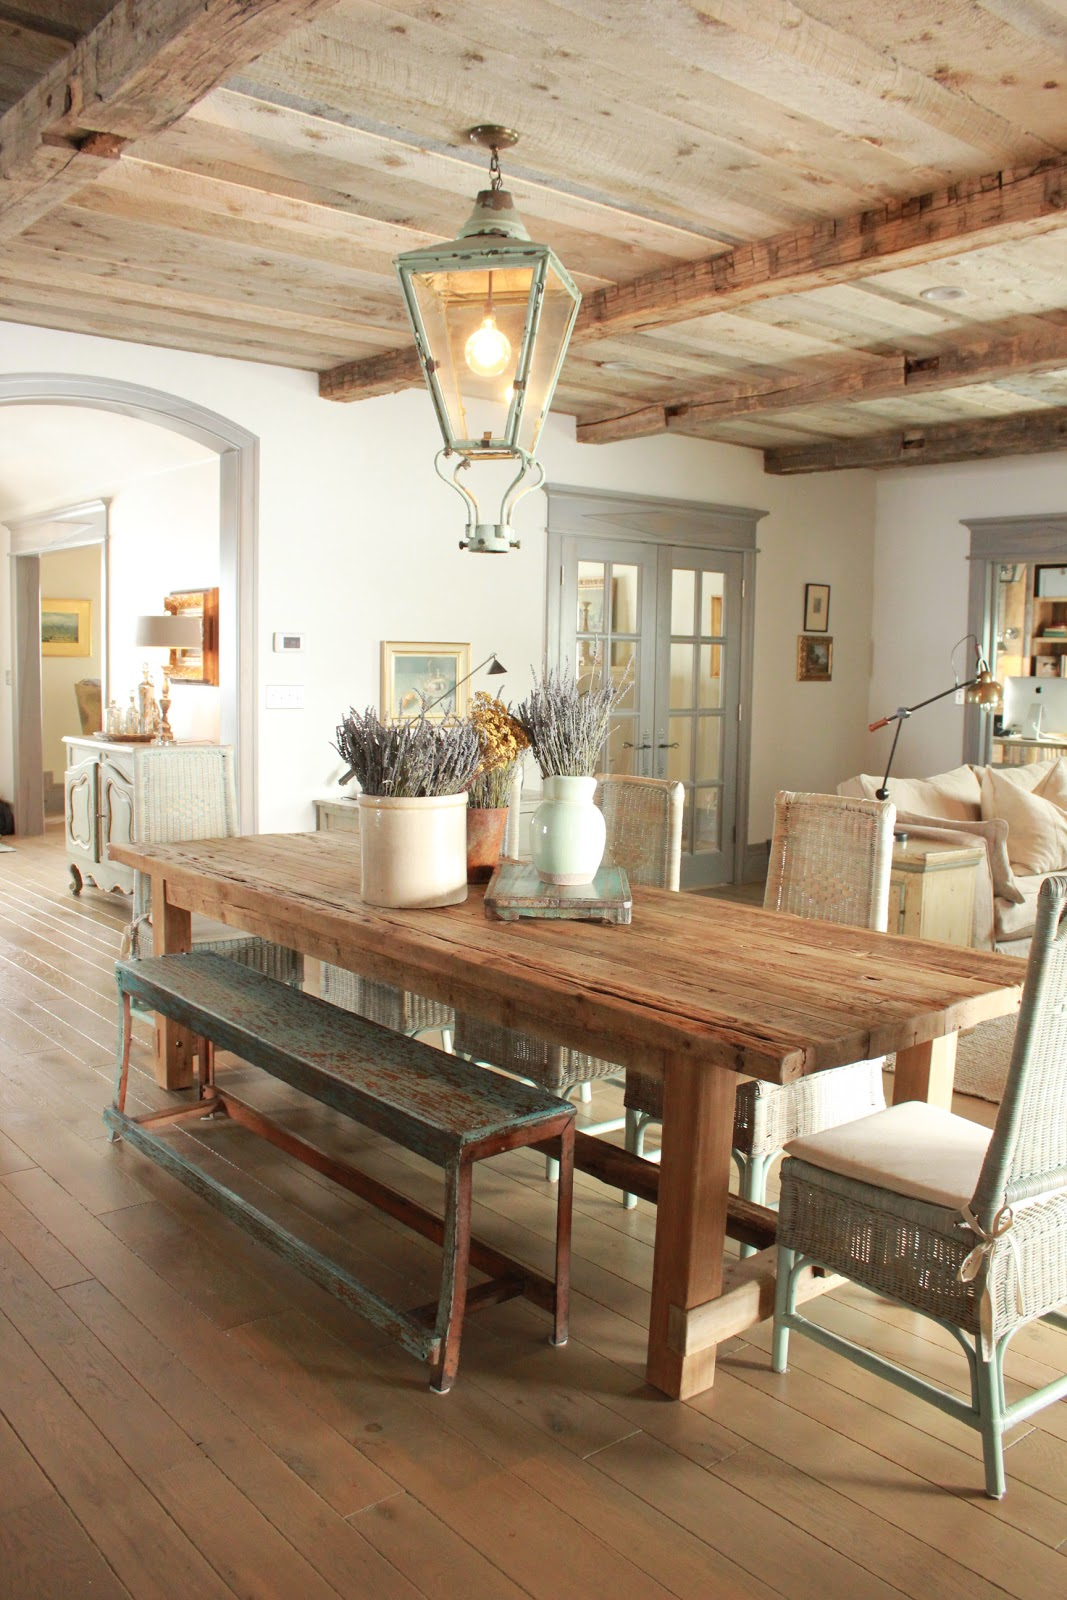 Rustic wood ceiling, weathered French lantern, and green accents in #Frenchfarmhouse dining room